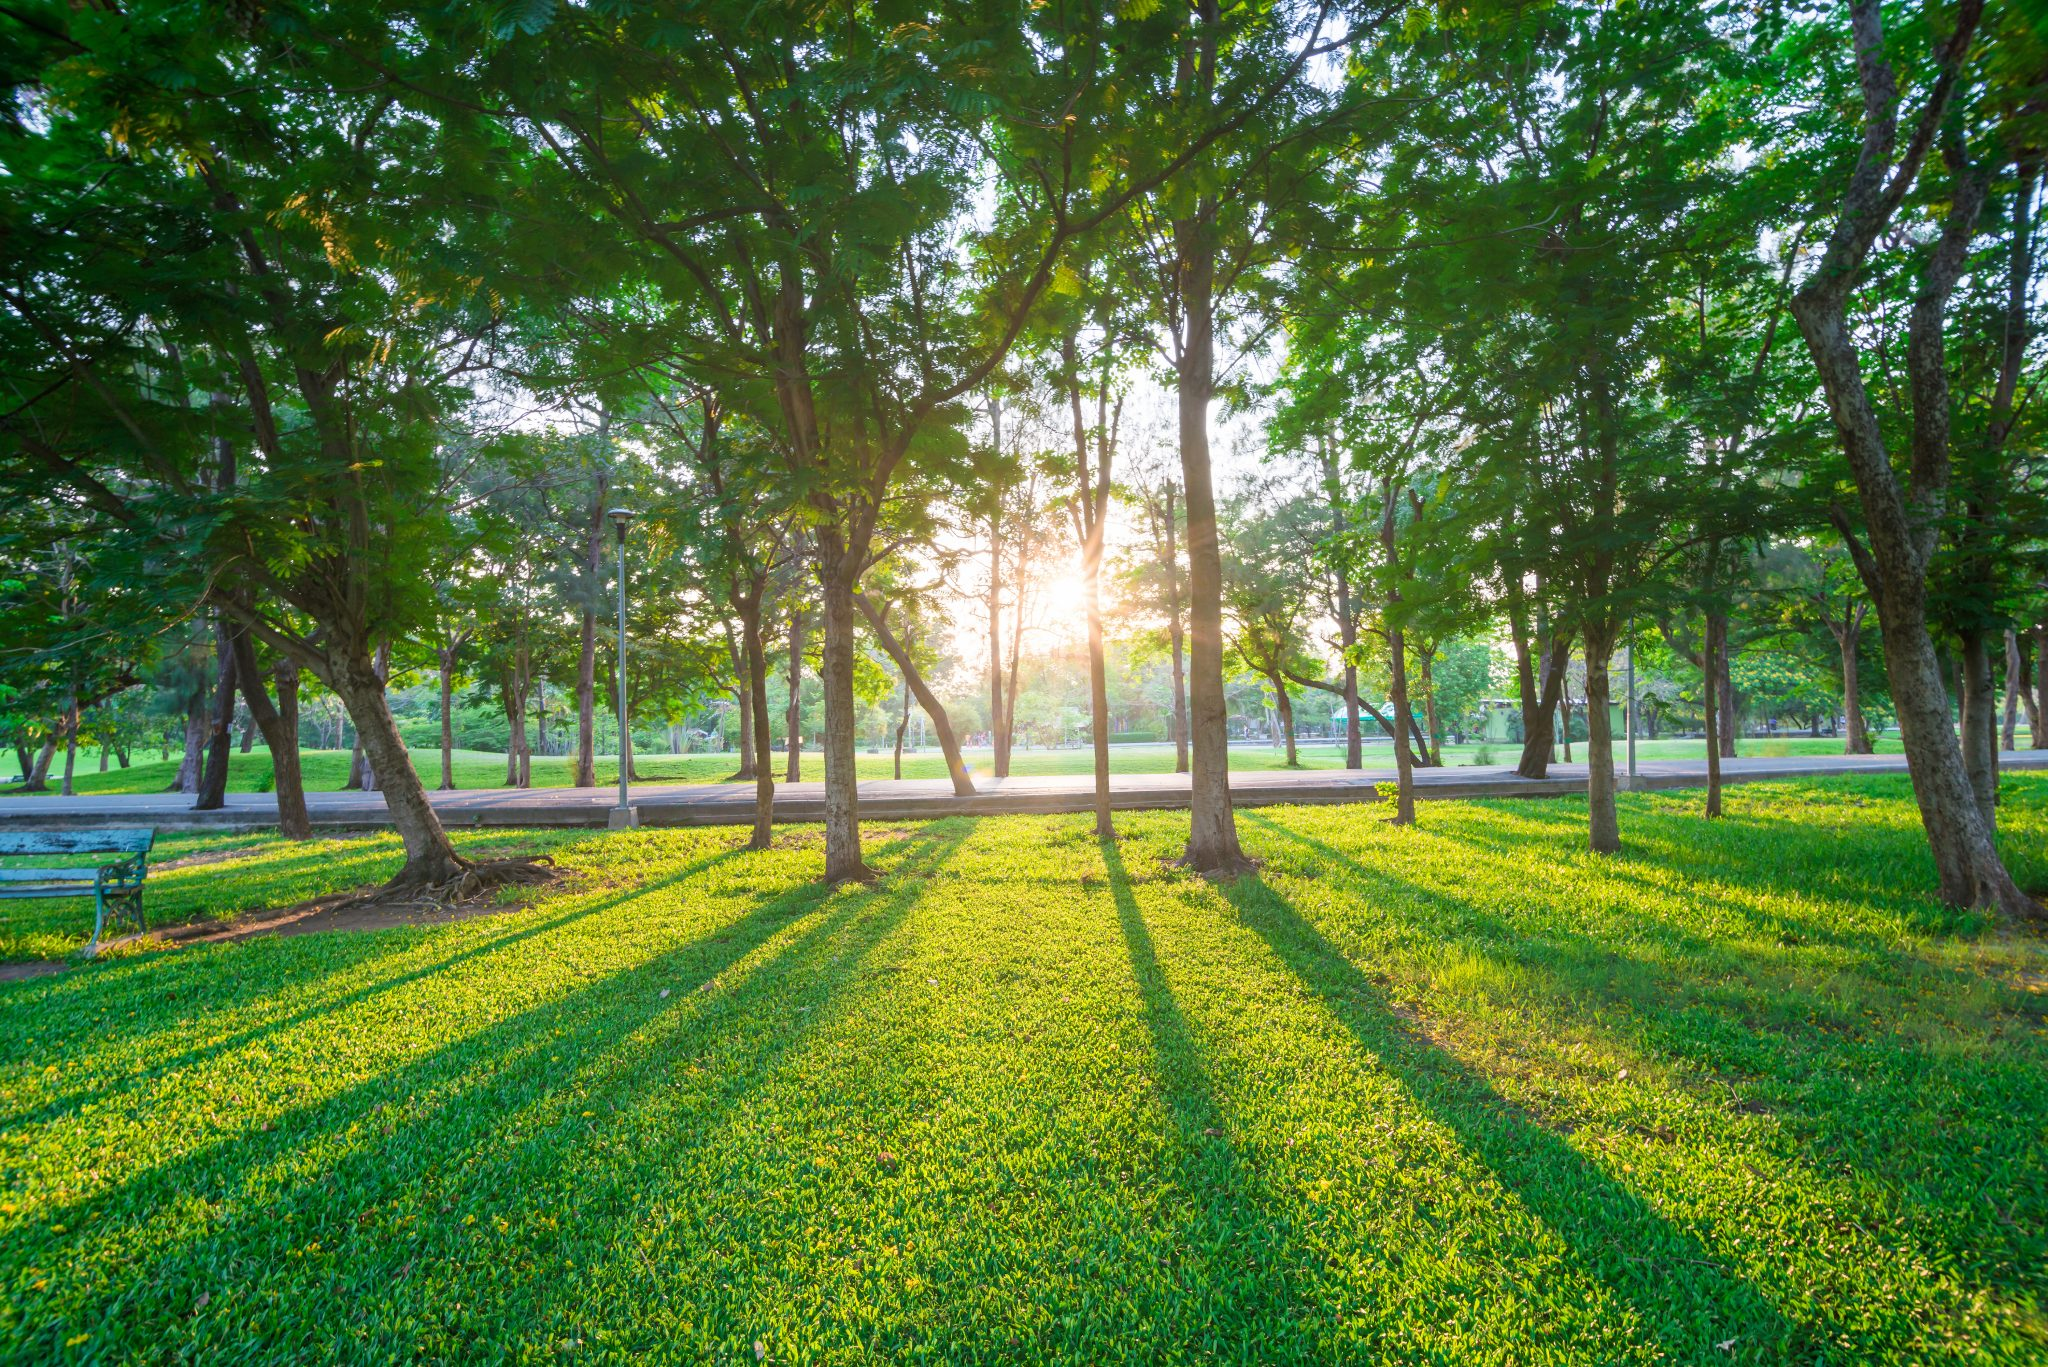 a park like those in powder springs [ Ekachai Wongsakul] © 123rf